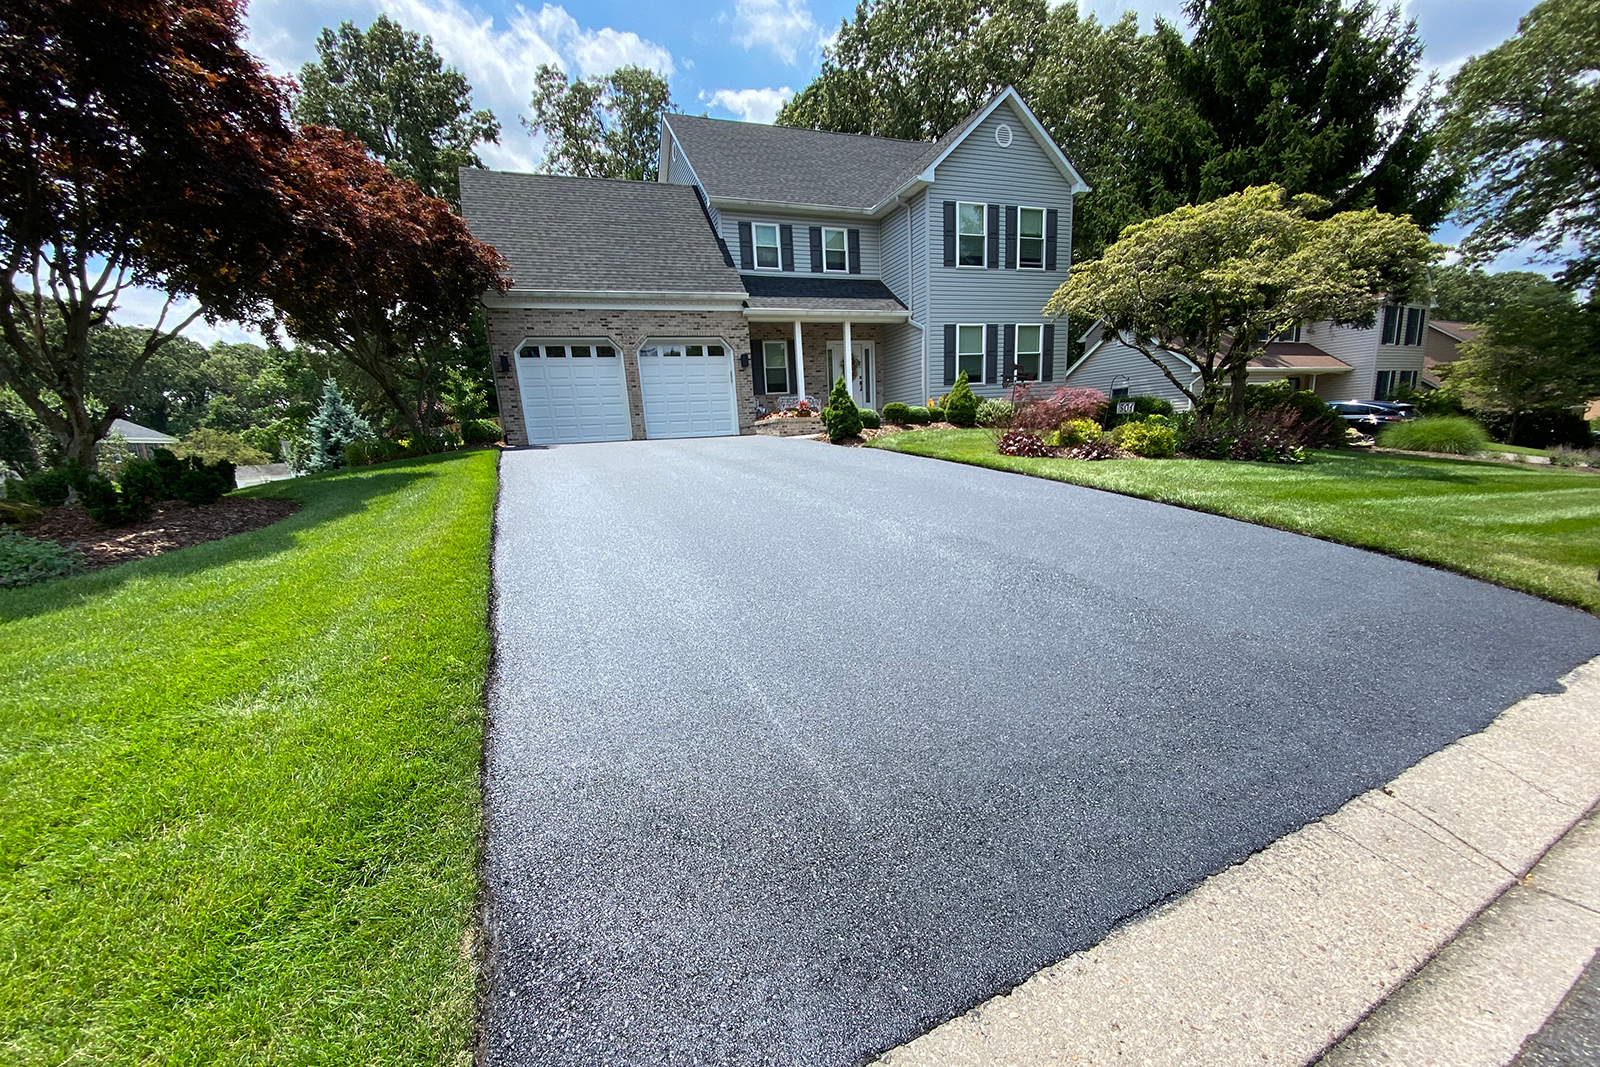 A beautiful driveway adds so much to a home's appearance